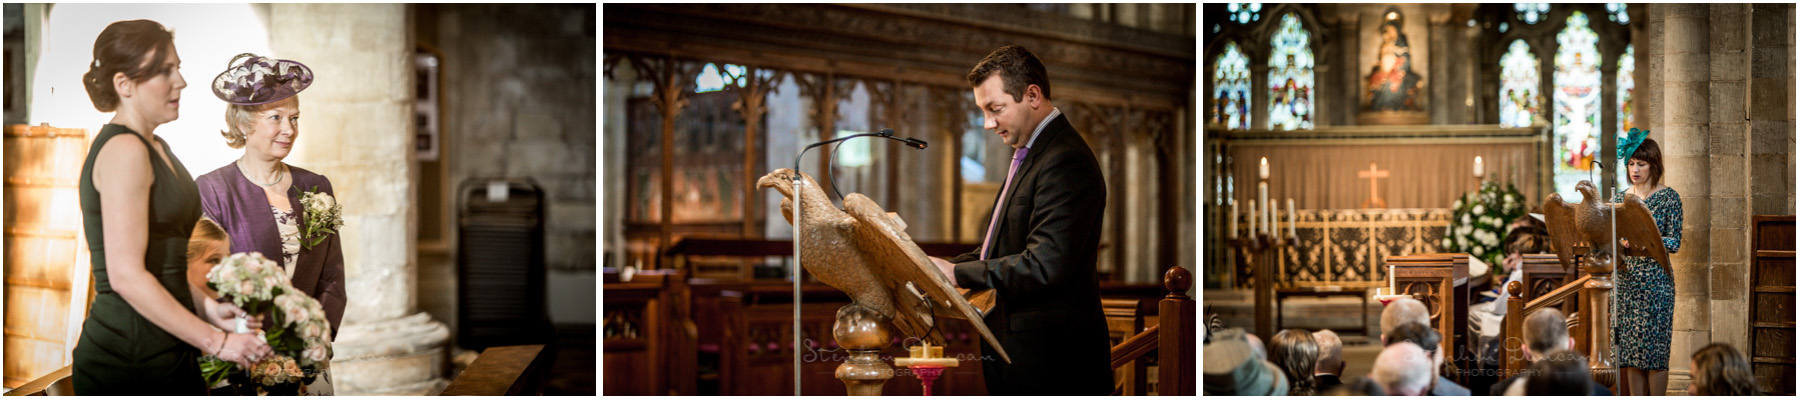 Romsey Abbey wedding photographer guest readings